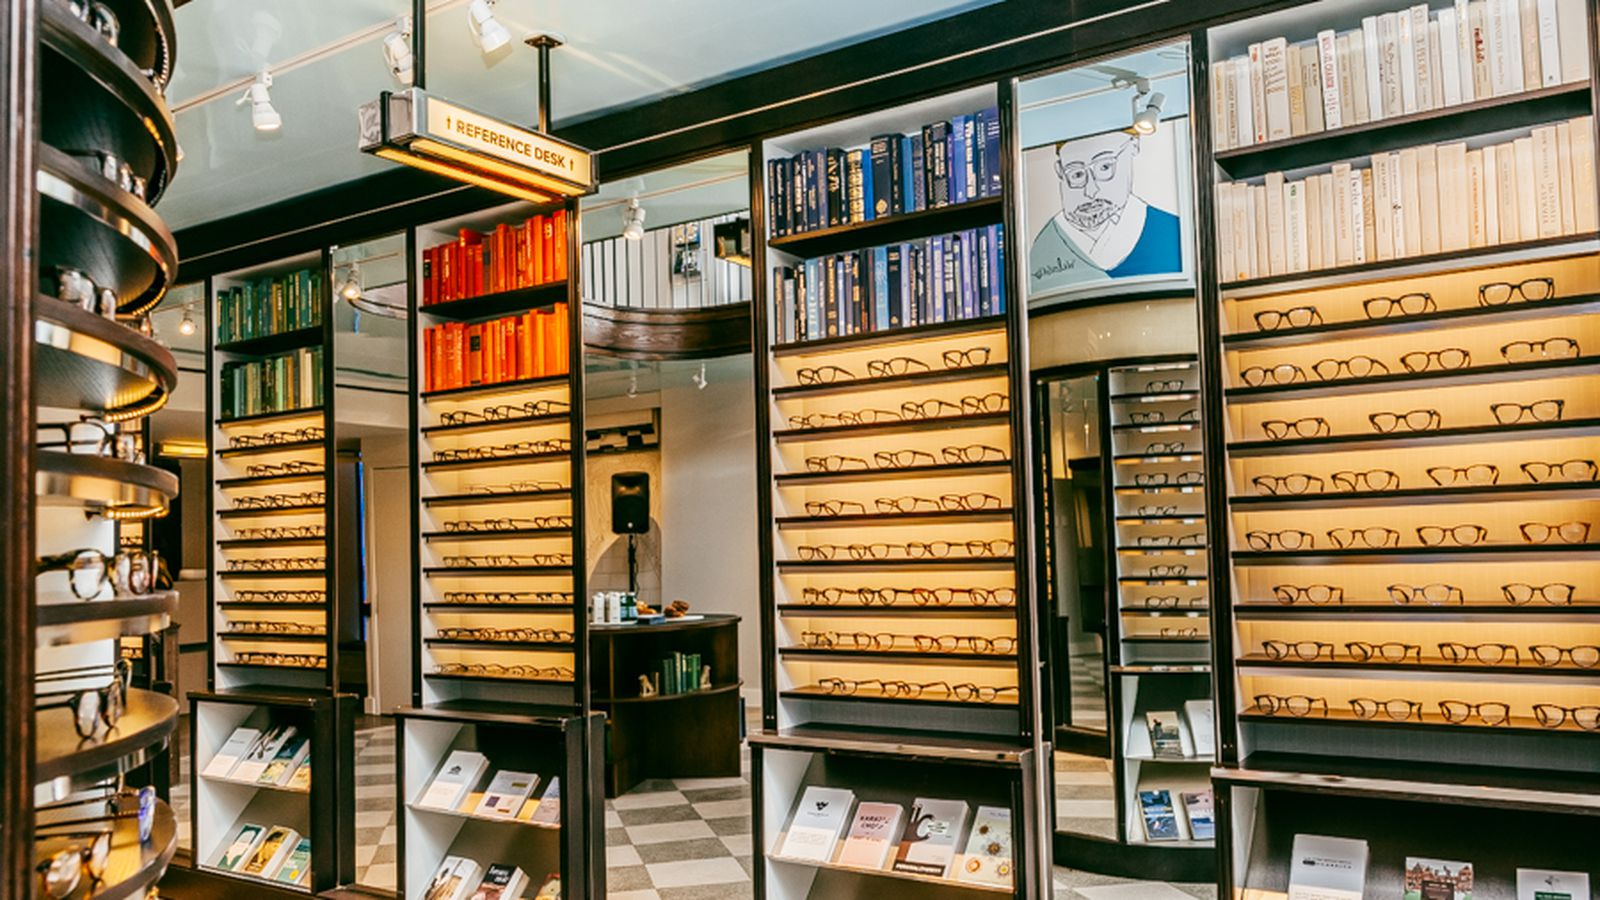 Warby parker 39 s first brooklyn store is on the way racked ny for Art and craft store in brooklyn ny